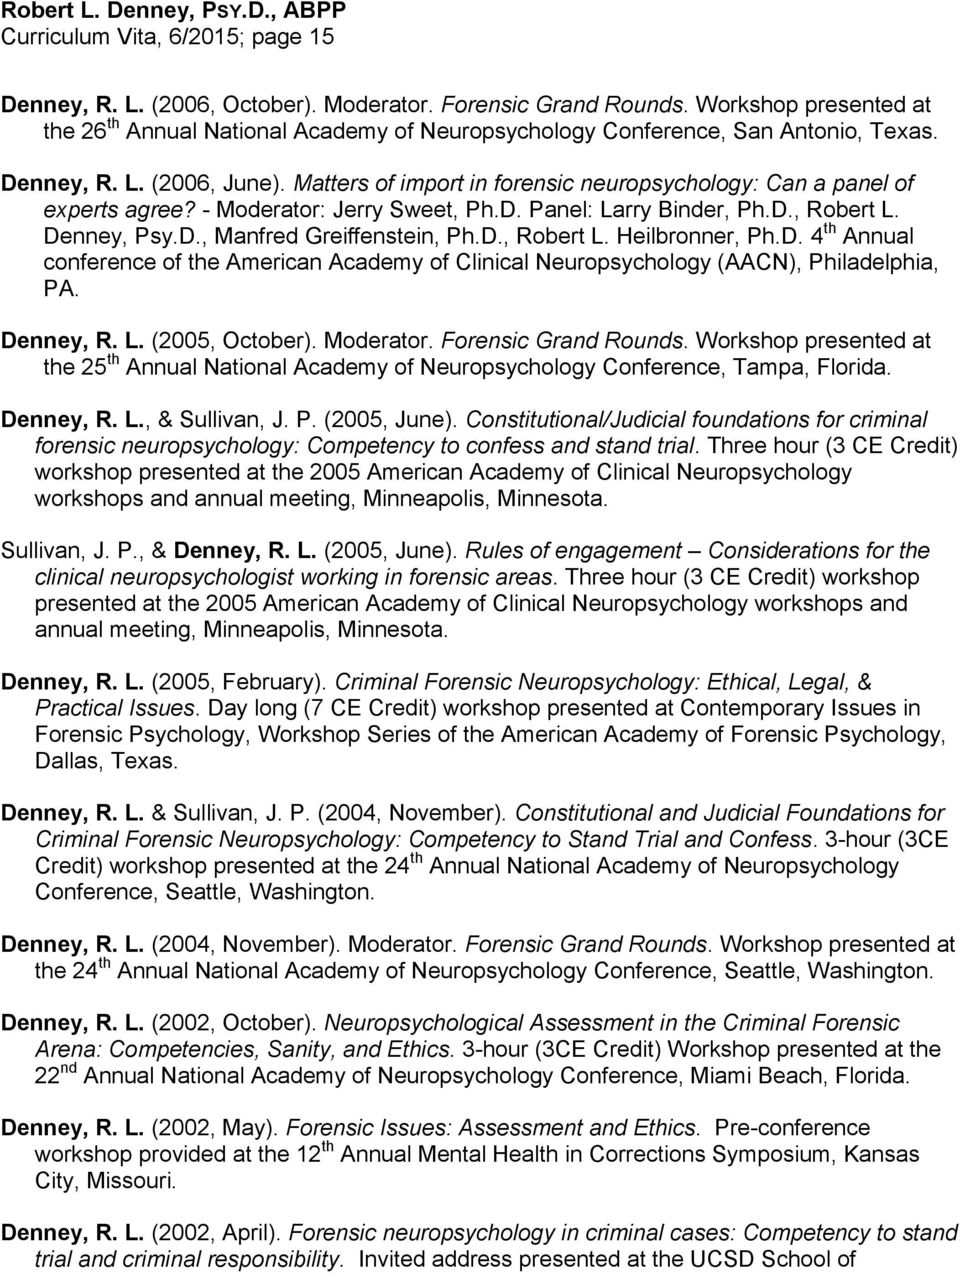 Matters of import in forensic neuropsychology: Can a panel of experts agree? - Moderator: Jerry Sweet, Ph.D. Panel: Larry Binder, Ph.D., Robert L. Denney, Psy.D., Manfred Greiffenstein, Ph.D., Robert L. Heilbronner, Ph.